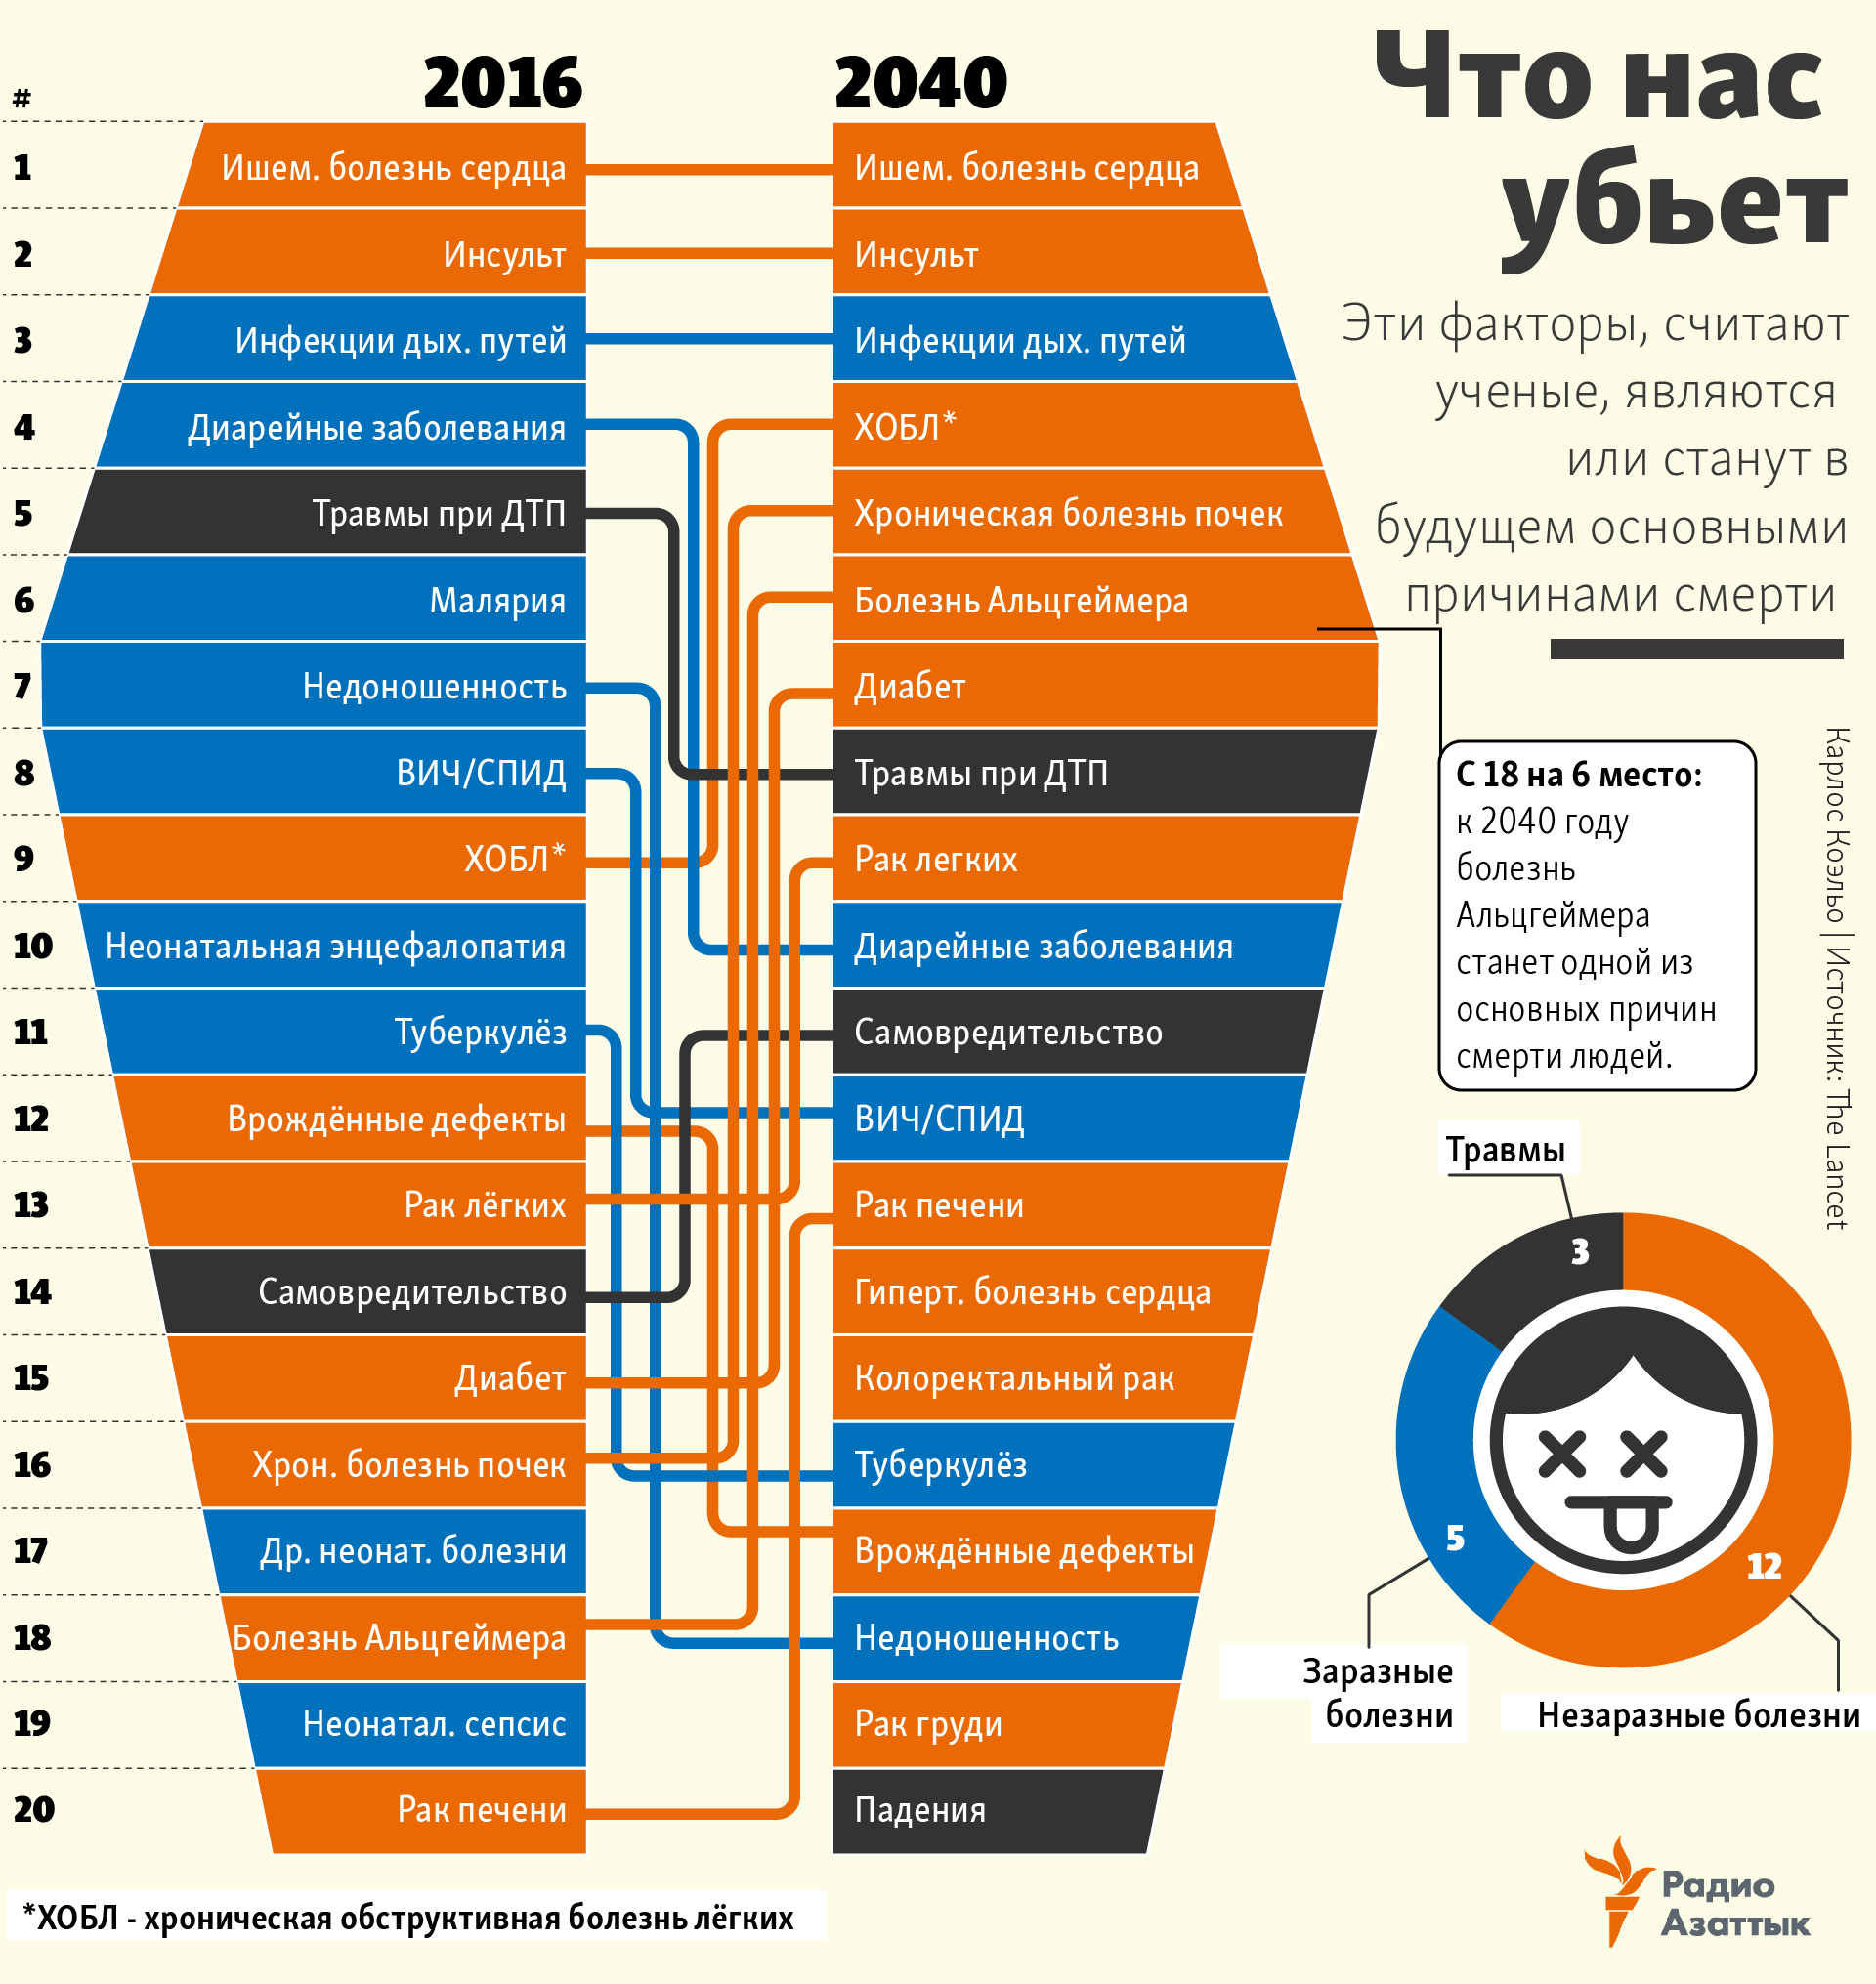 infographic main causes of death now and in 2040